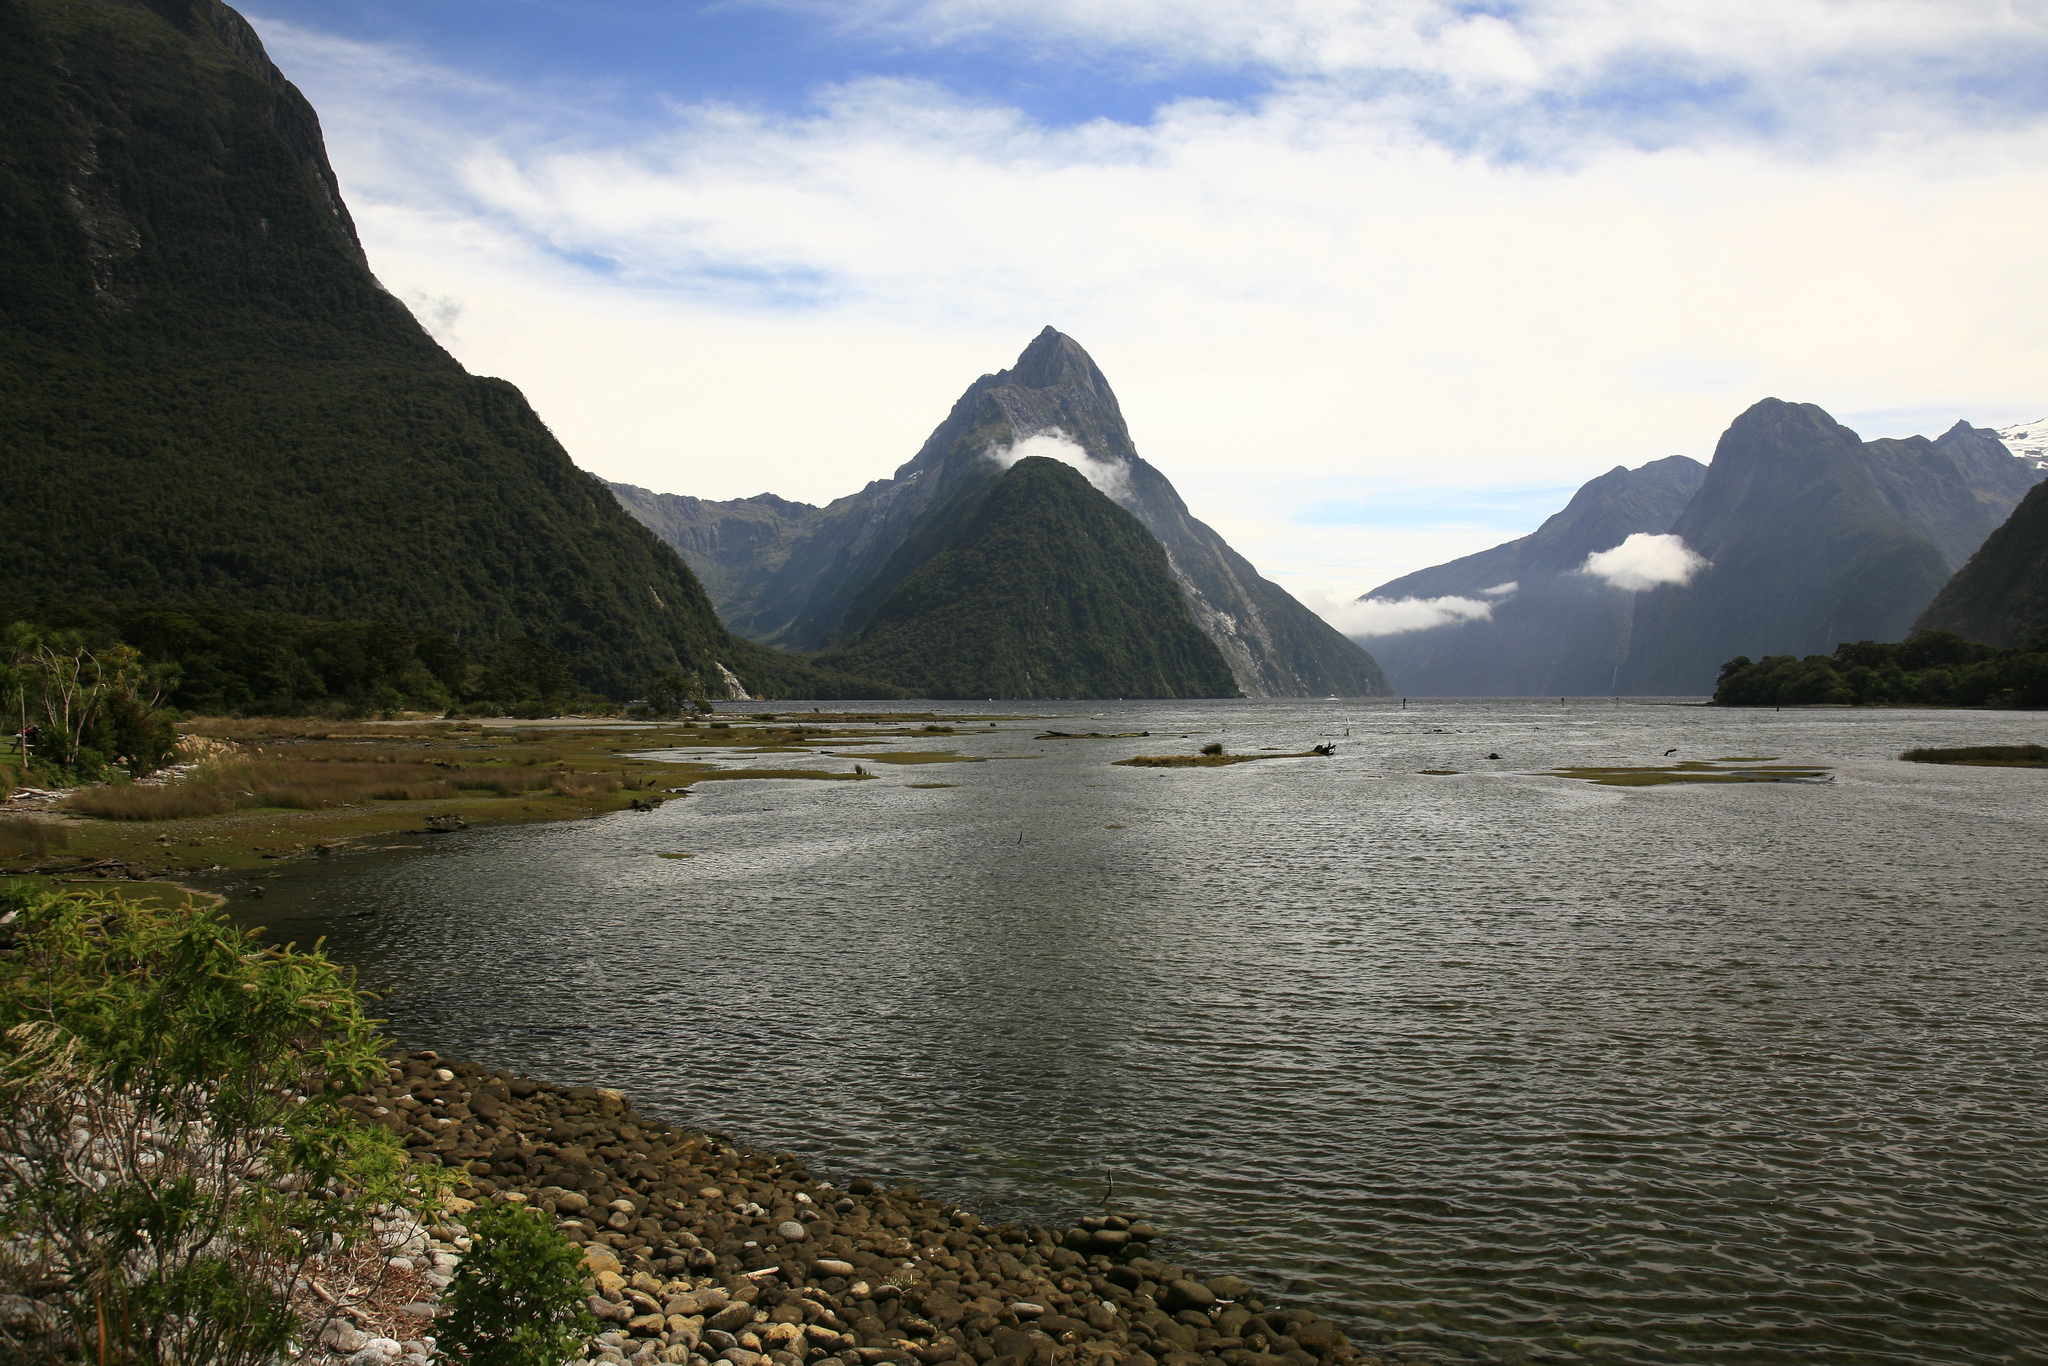 Overland Travel through the South Island of New Zealand will bring you to the shores of the most beautiful body of water you have ever seen - Milford Sound ...  photo by CC user vendin on Flickr